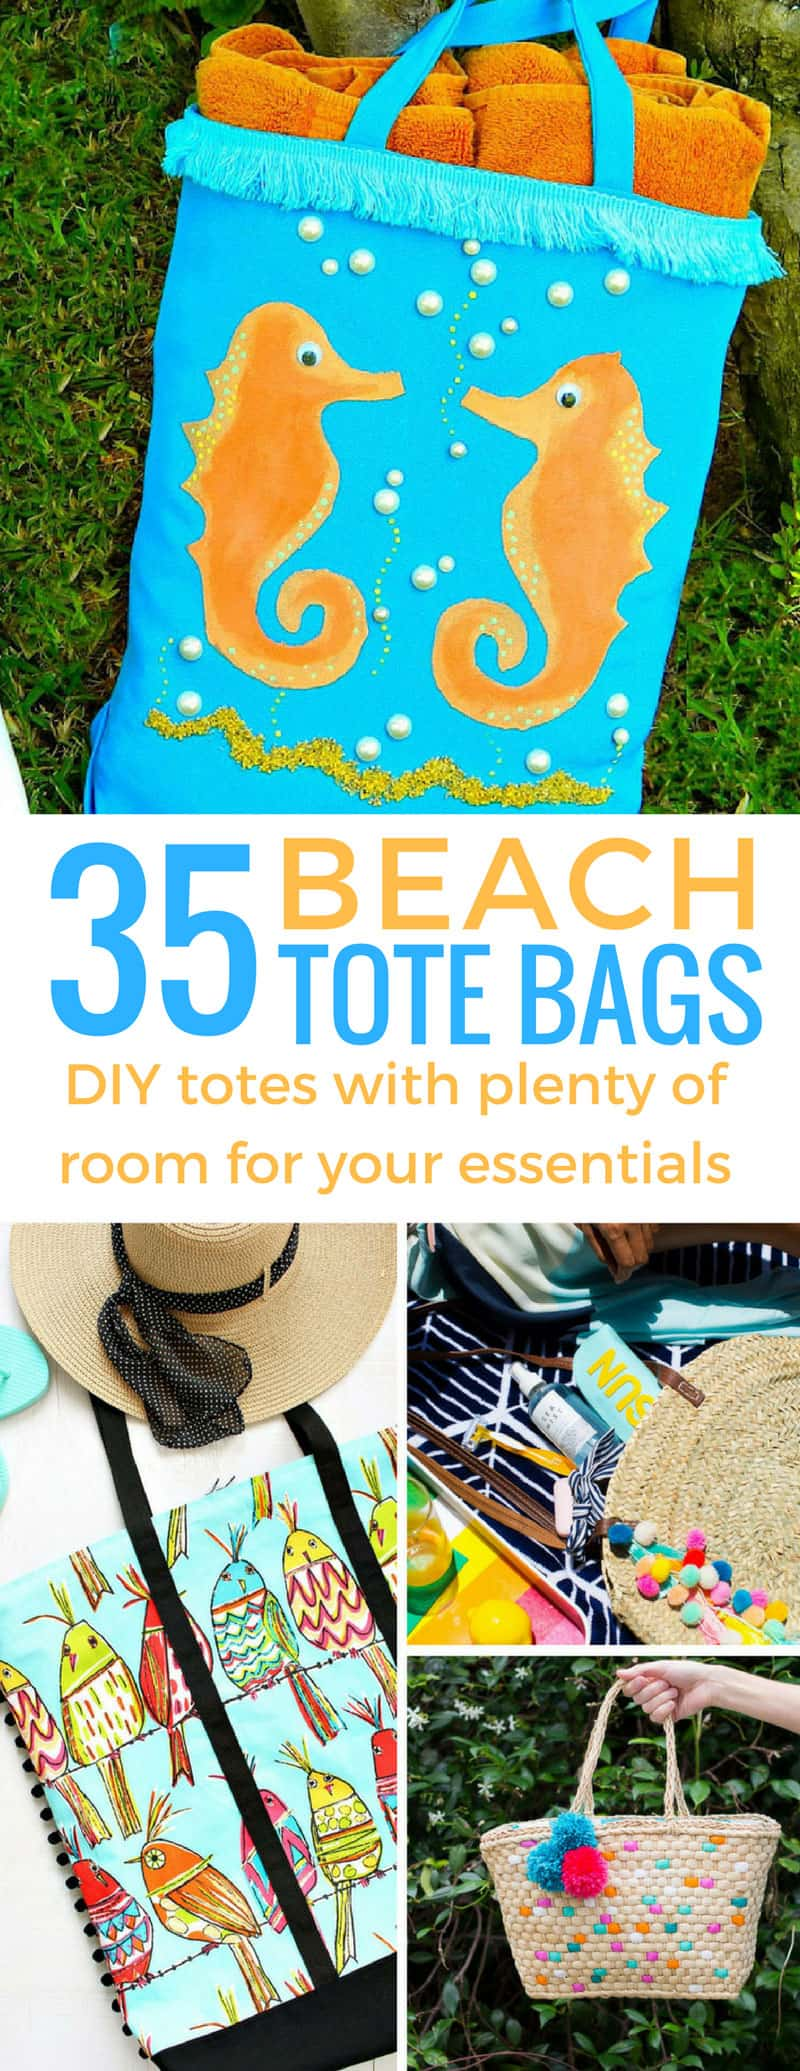 These DIY beach tote bags are gorgeous - I'm going to be the envy of the beach this summer!